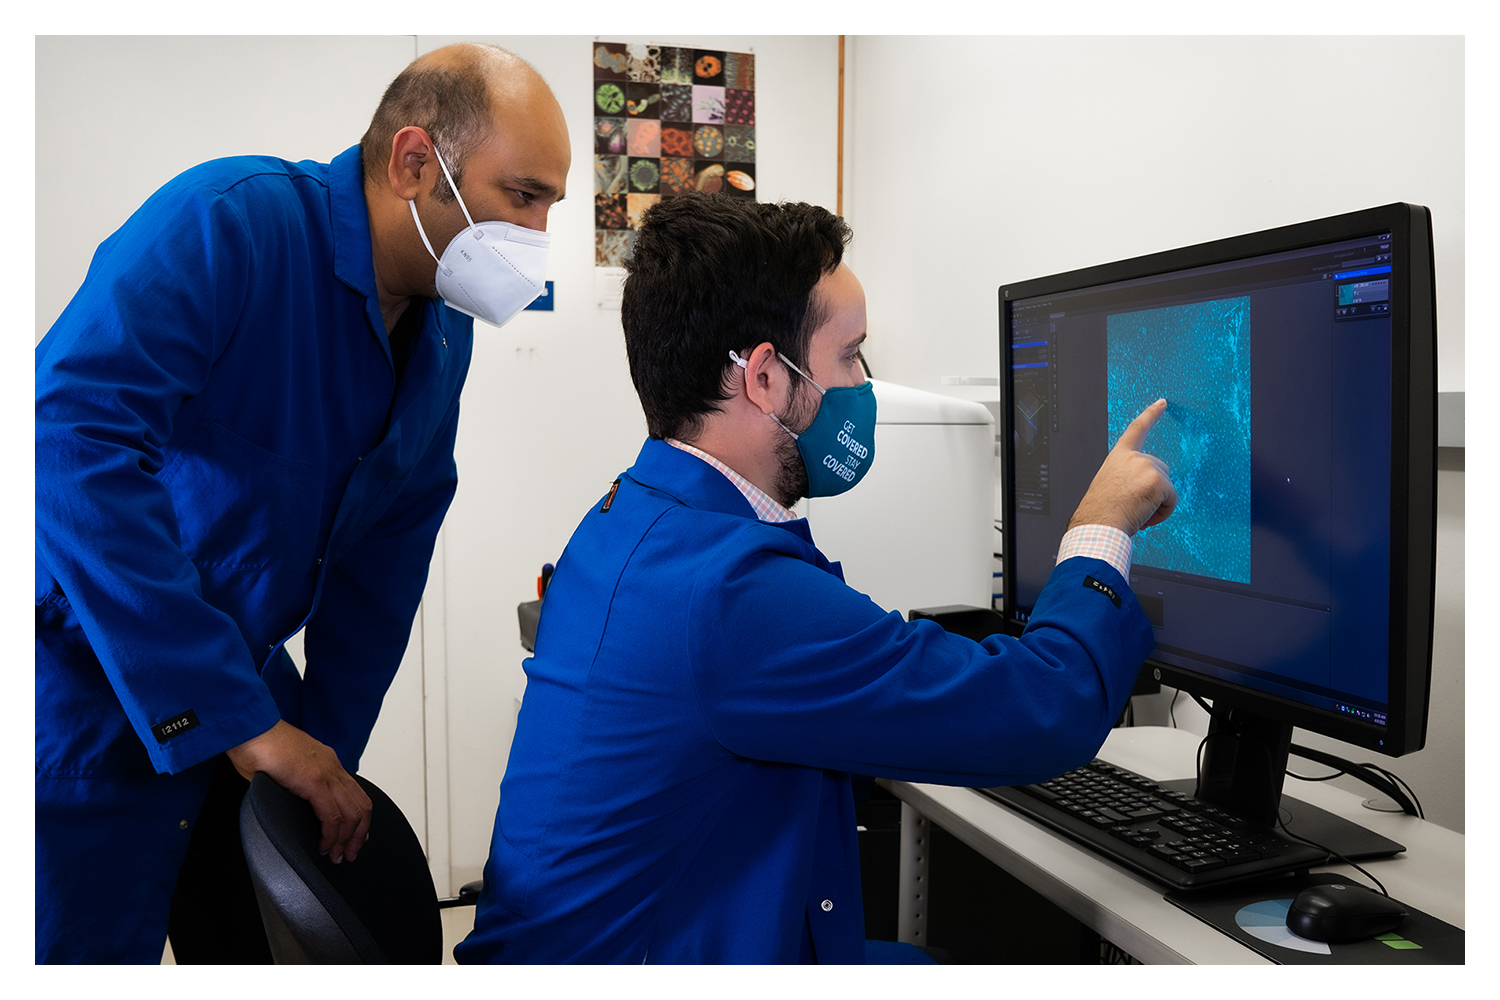 Two men inspect images on a computer screen